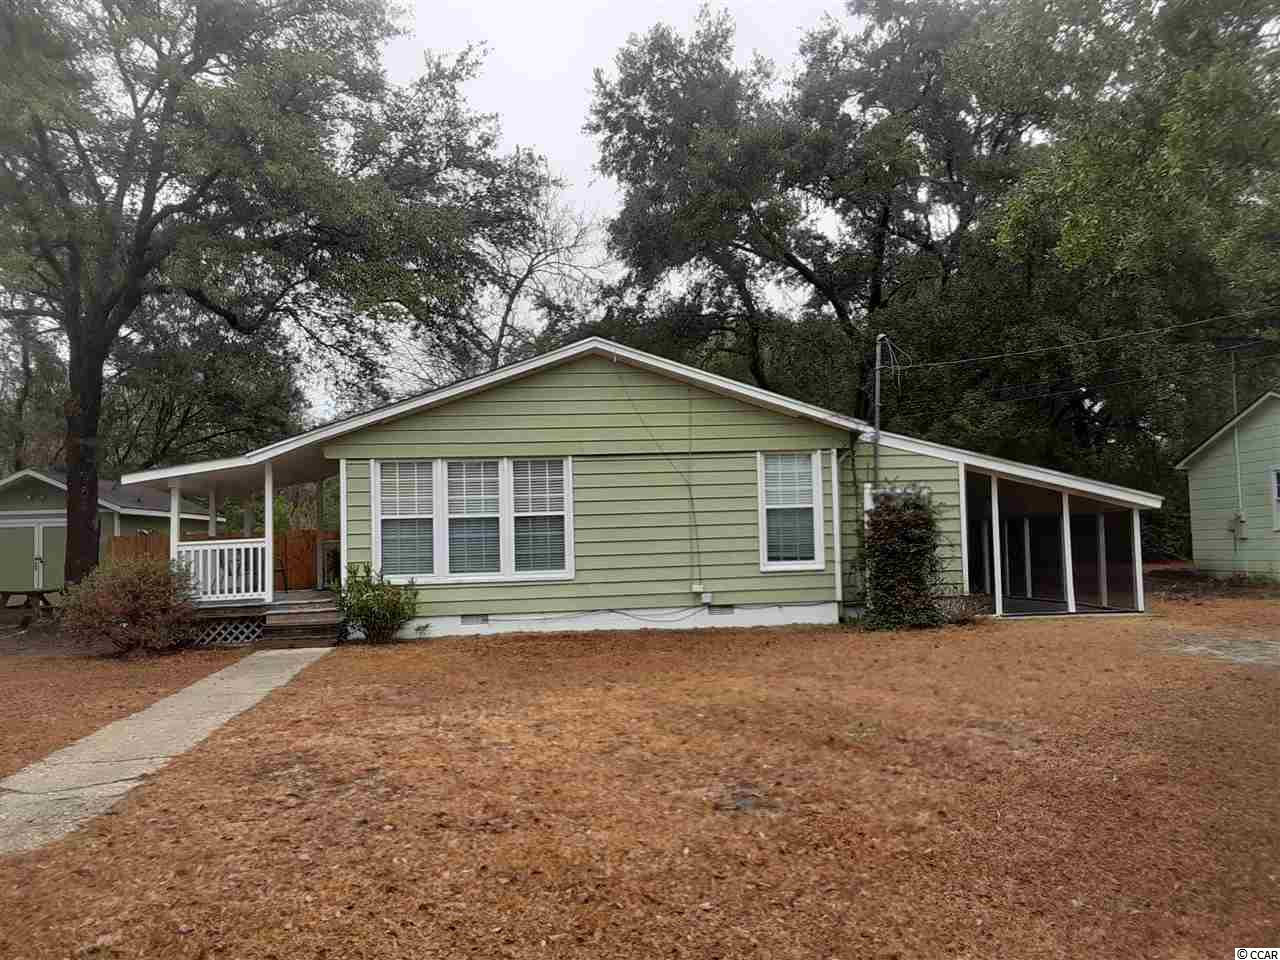 3 bedroom 2 bath located in the Maryville section on Georgetown. Just minutes from the downtown Historic District shopping and dining. It is 30 miles south of Myrtle Beach and 60 miles north of Charleston. Has a fenced in back yard, 12 x 20 workshop with A/C. 10 x 18 screened in porch. Hardwood floors. Great starter home or investment property. Square footage is approximate and not guaranteed. Buyer is responsible for verification.